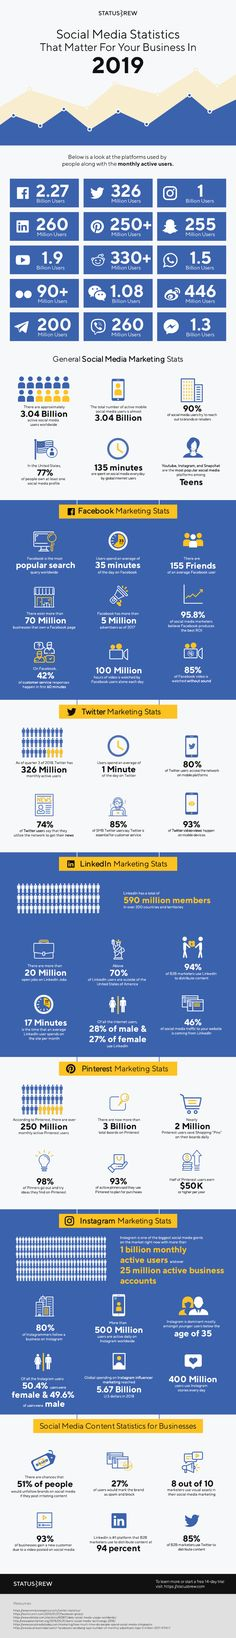 Refer to our well researched and relevant social media statistics supported by data and infographic to plan a successful digital marketing strategy in 2019 Inbound Marketing, Marketing Budget, Digital Marketing Strategy, Facebook Marketing, Marketing Ideas, Social Media Statistics, Social Media Usage, Social Media Video, Social Media Marketing